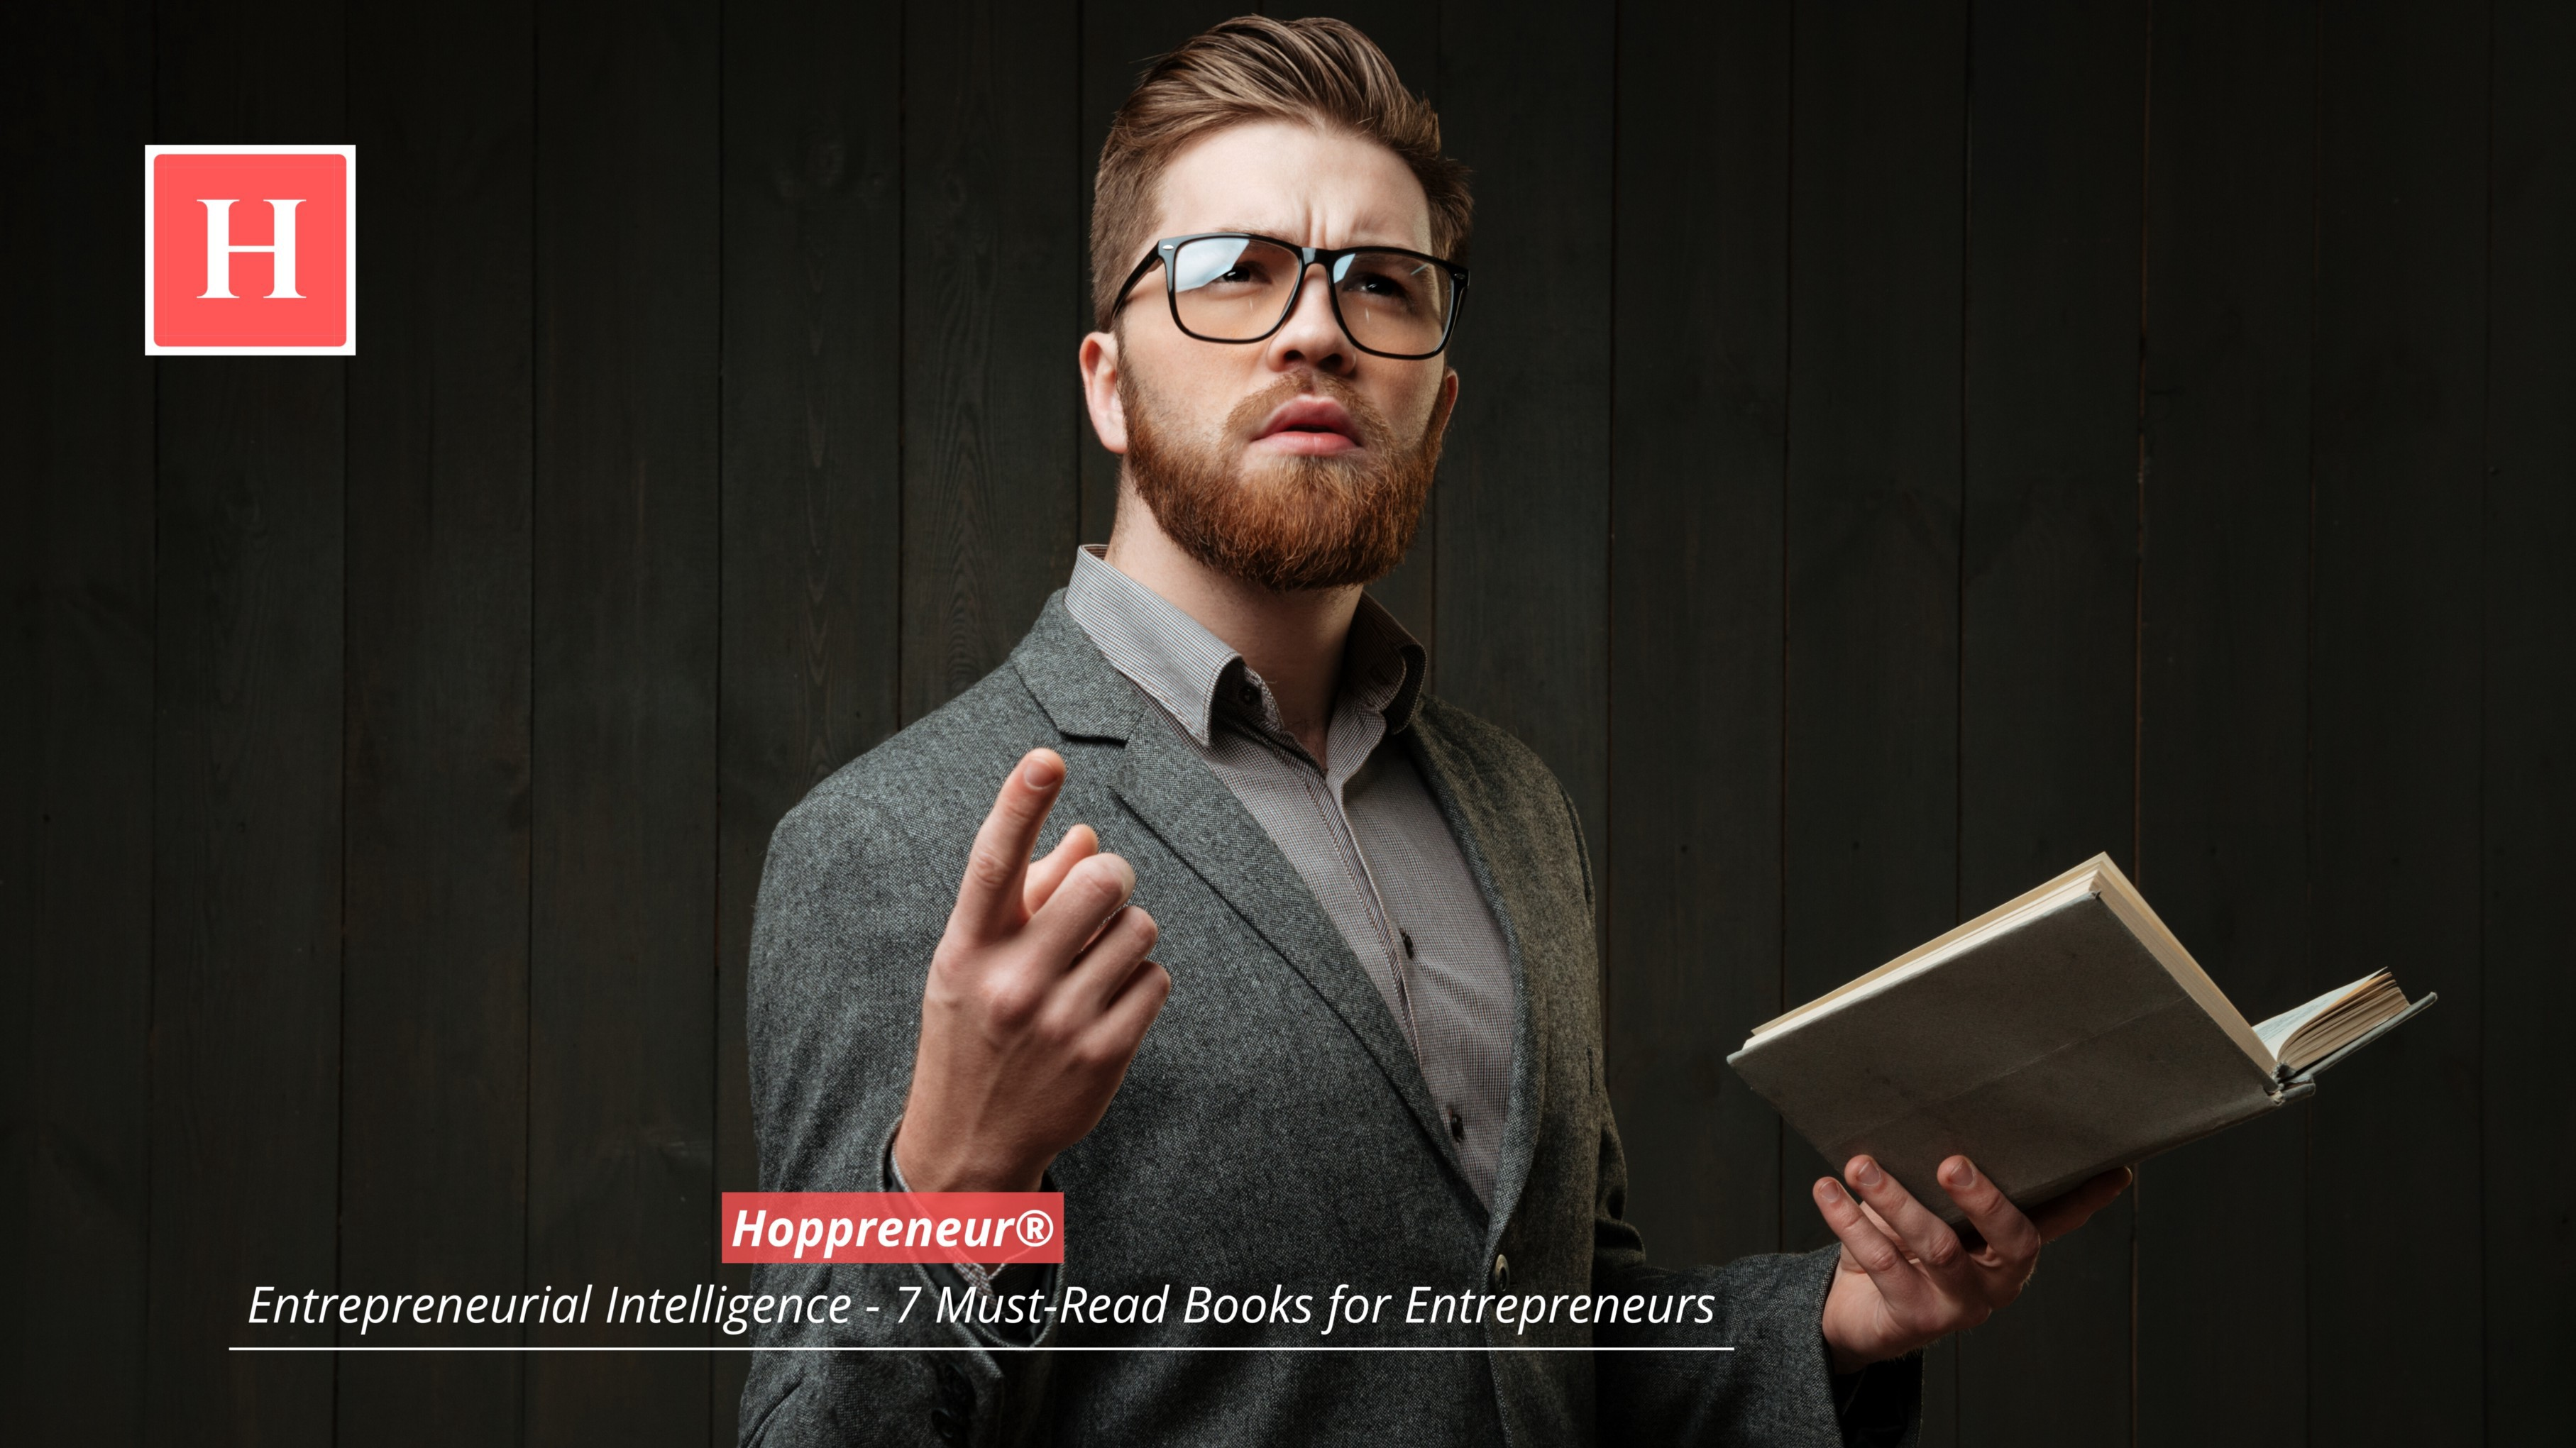 Interested in starting and developing a successful entrepreneurial career then start seven must-read books for entrepreneurs, published by Hoppreneur/Entrepreneurial Intelligence Guide at Medium/Photo by Hoppreneur